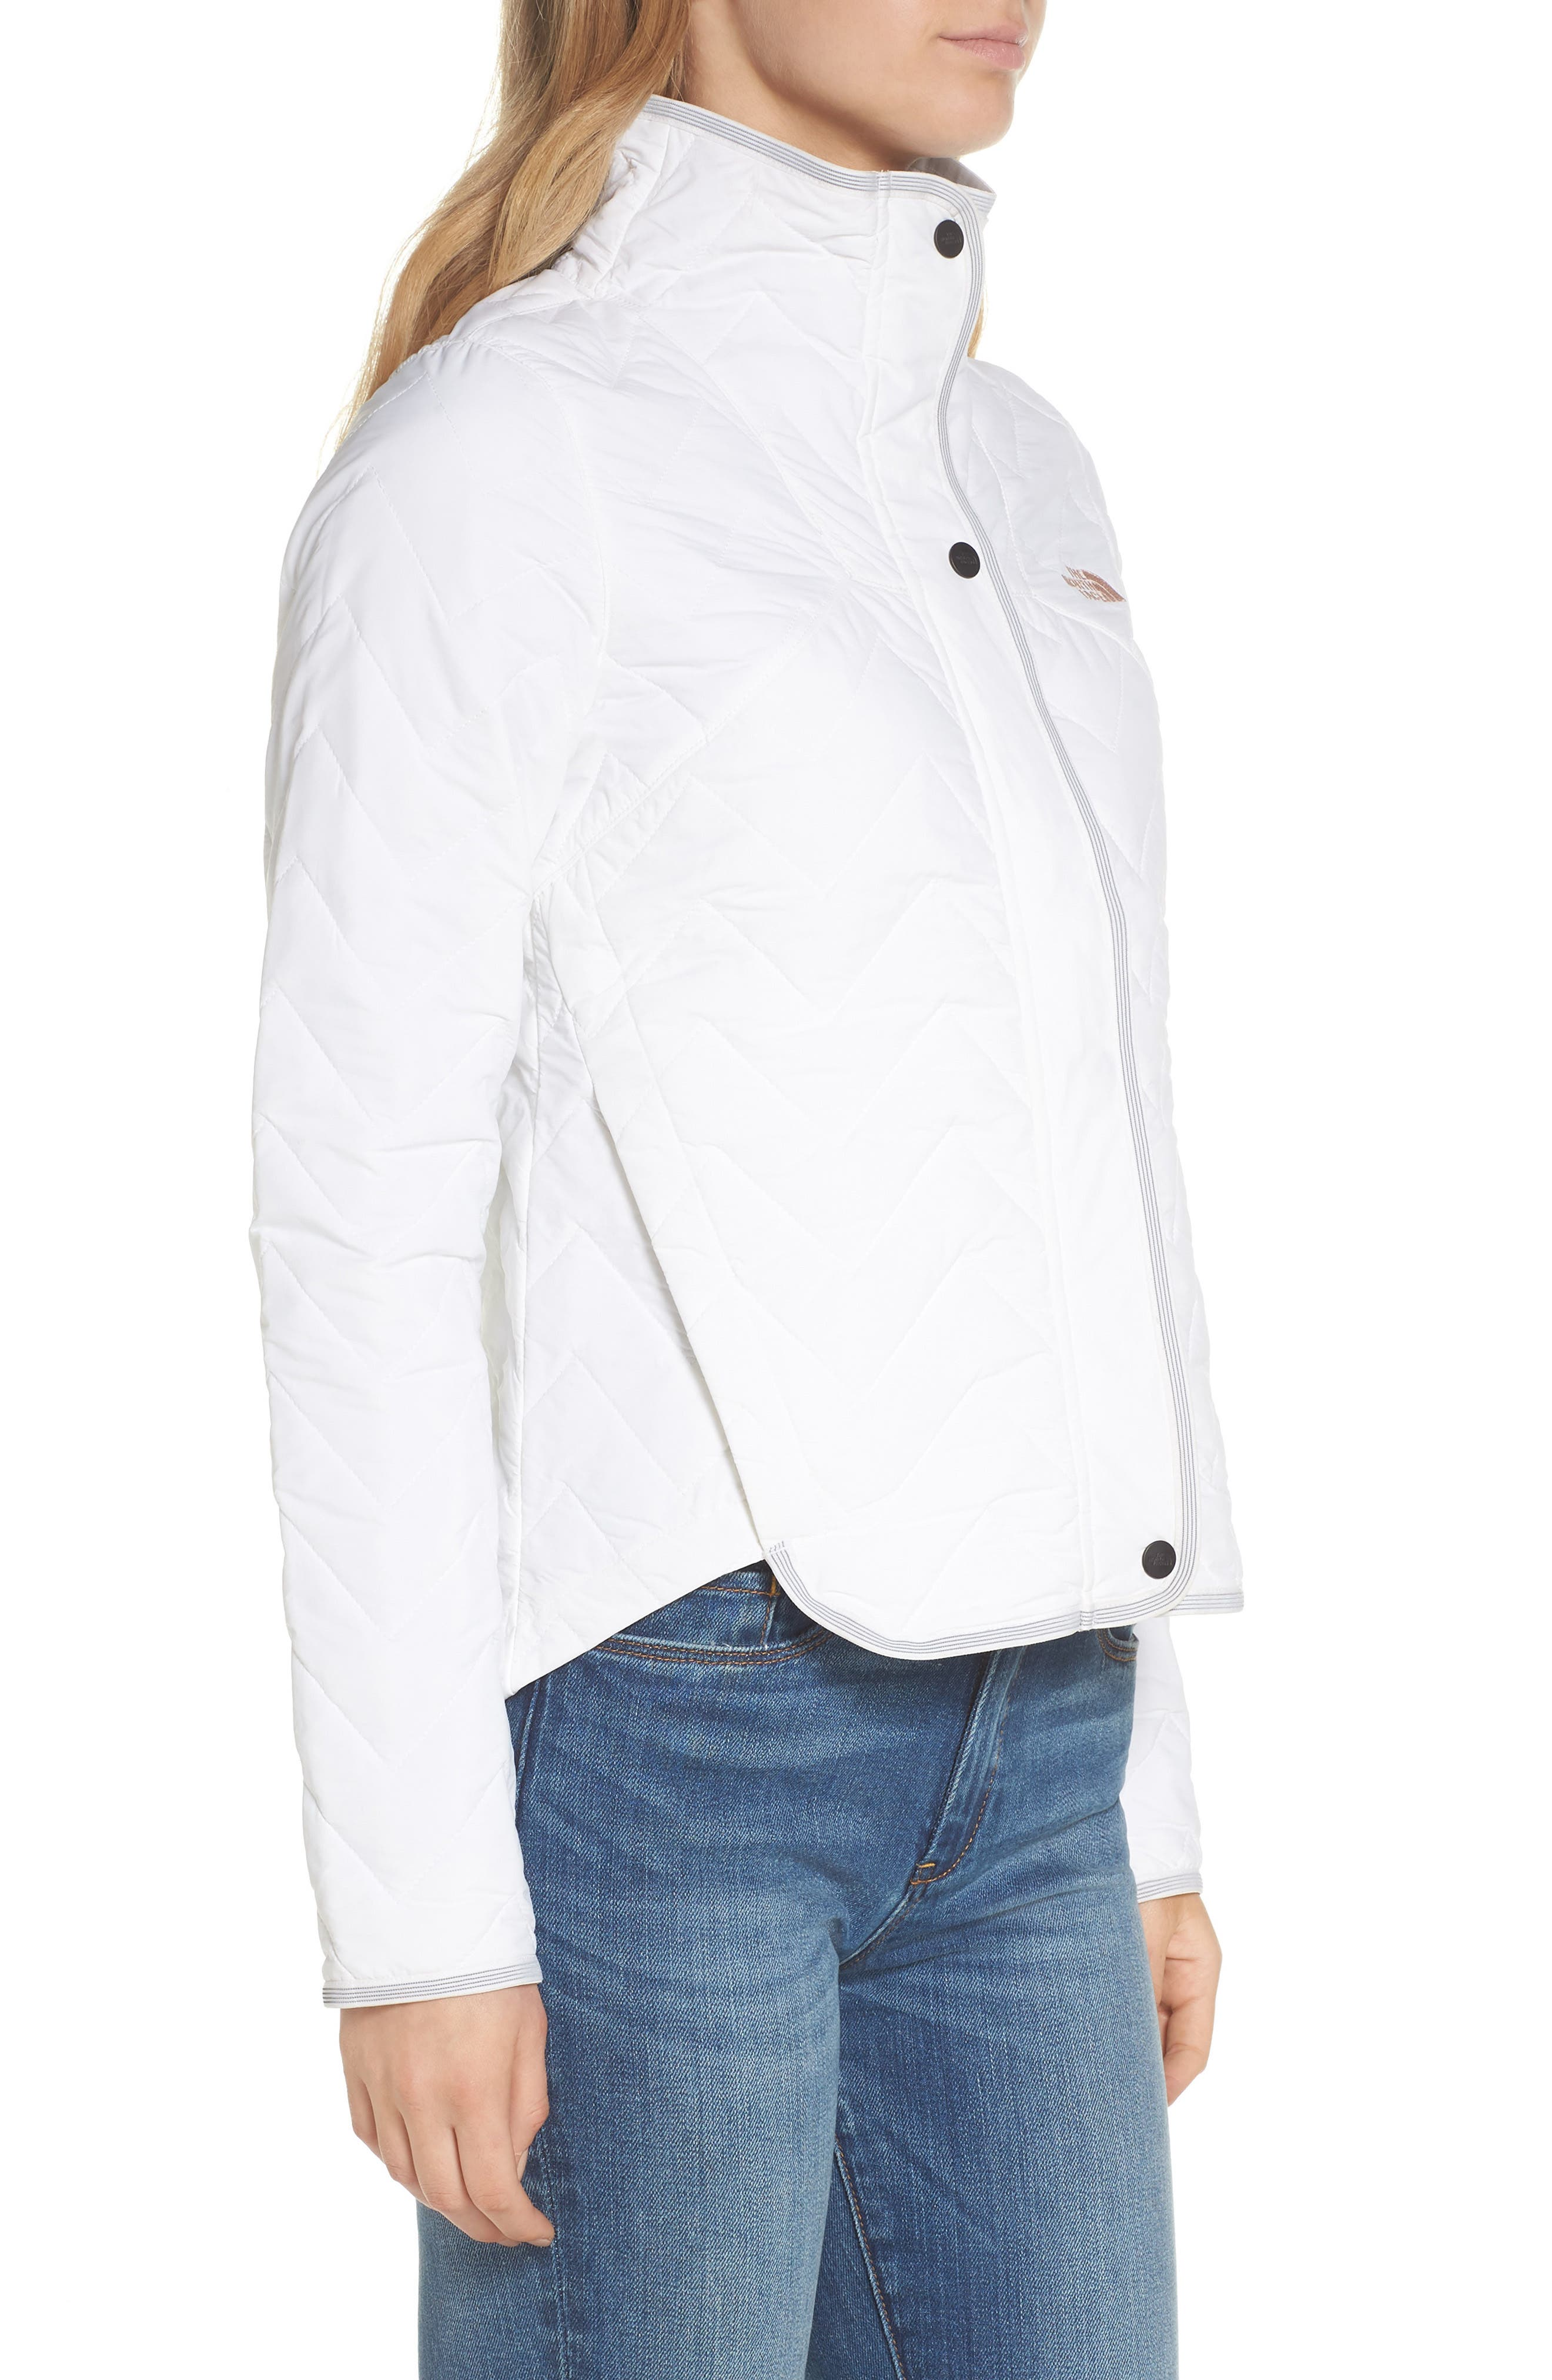 Westborough Insulated Jacket,                             Alternate thumbnail 3, color,                             BRIGHT WHITE